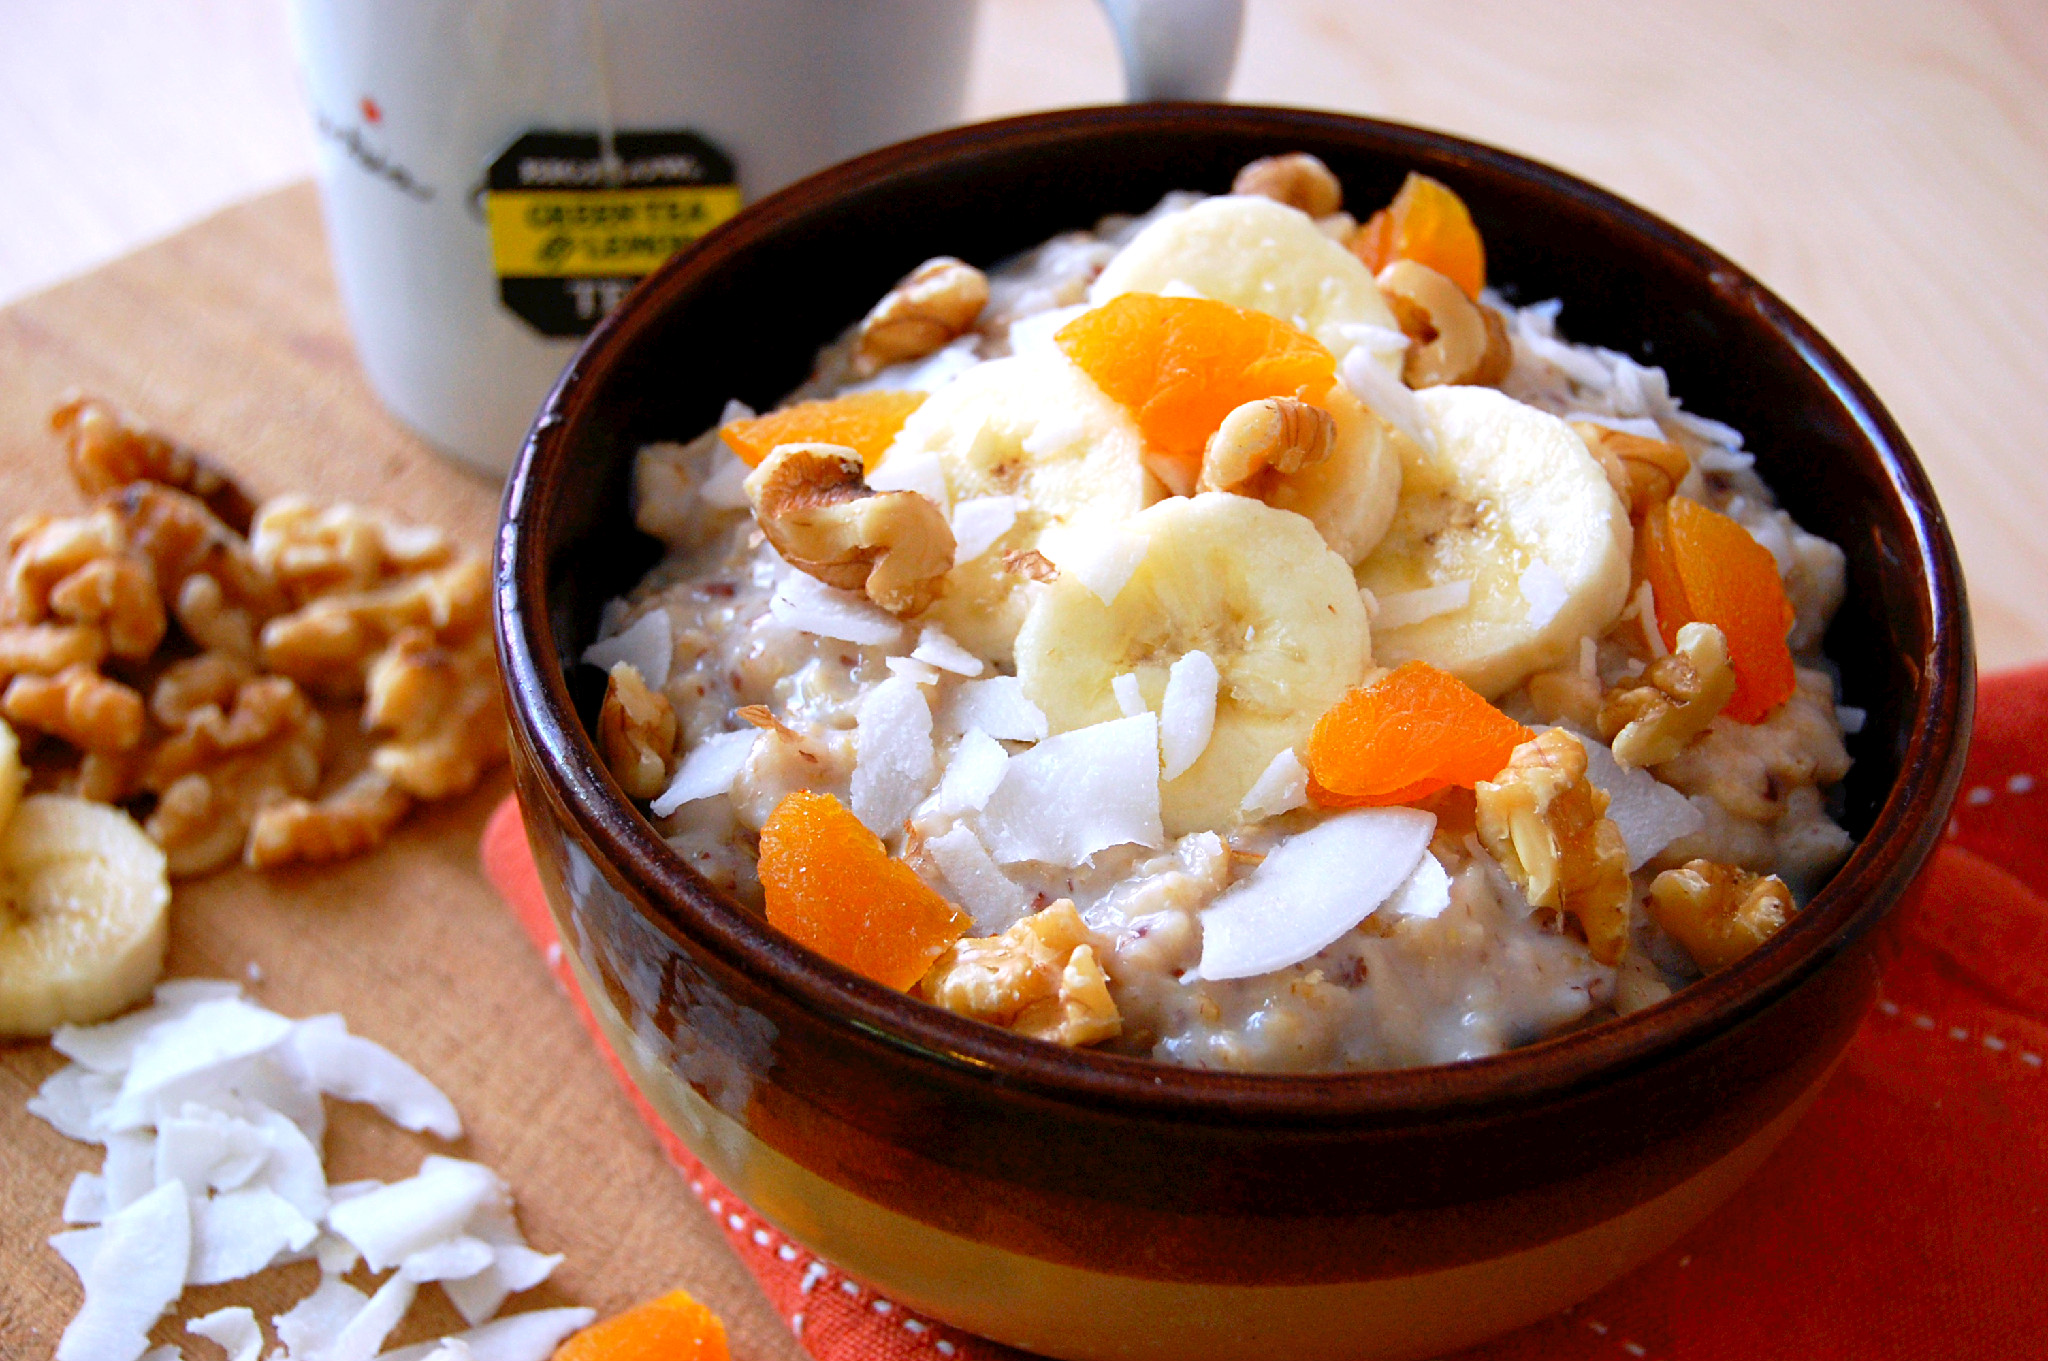 Green Tea Oatmeal with Banana, Walnuts, Apricots and Coconut